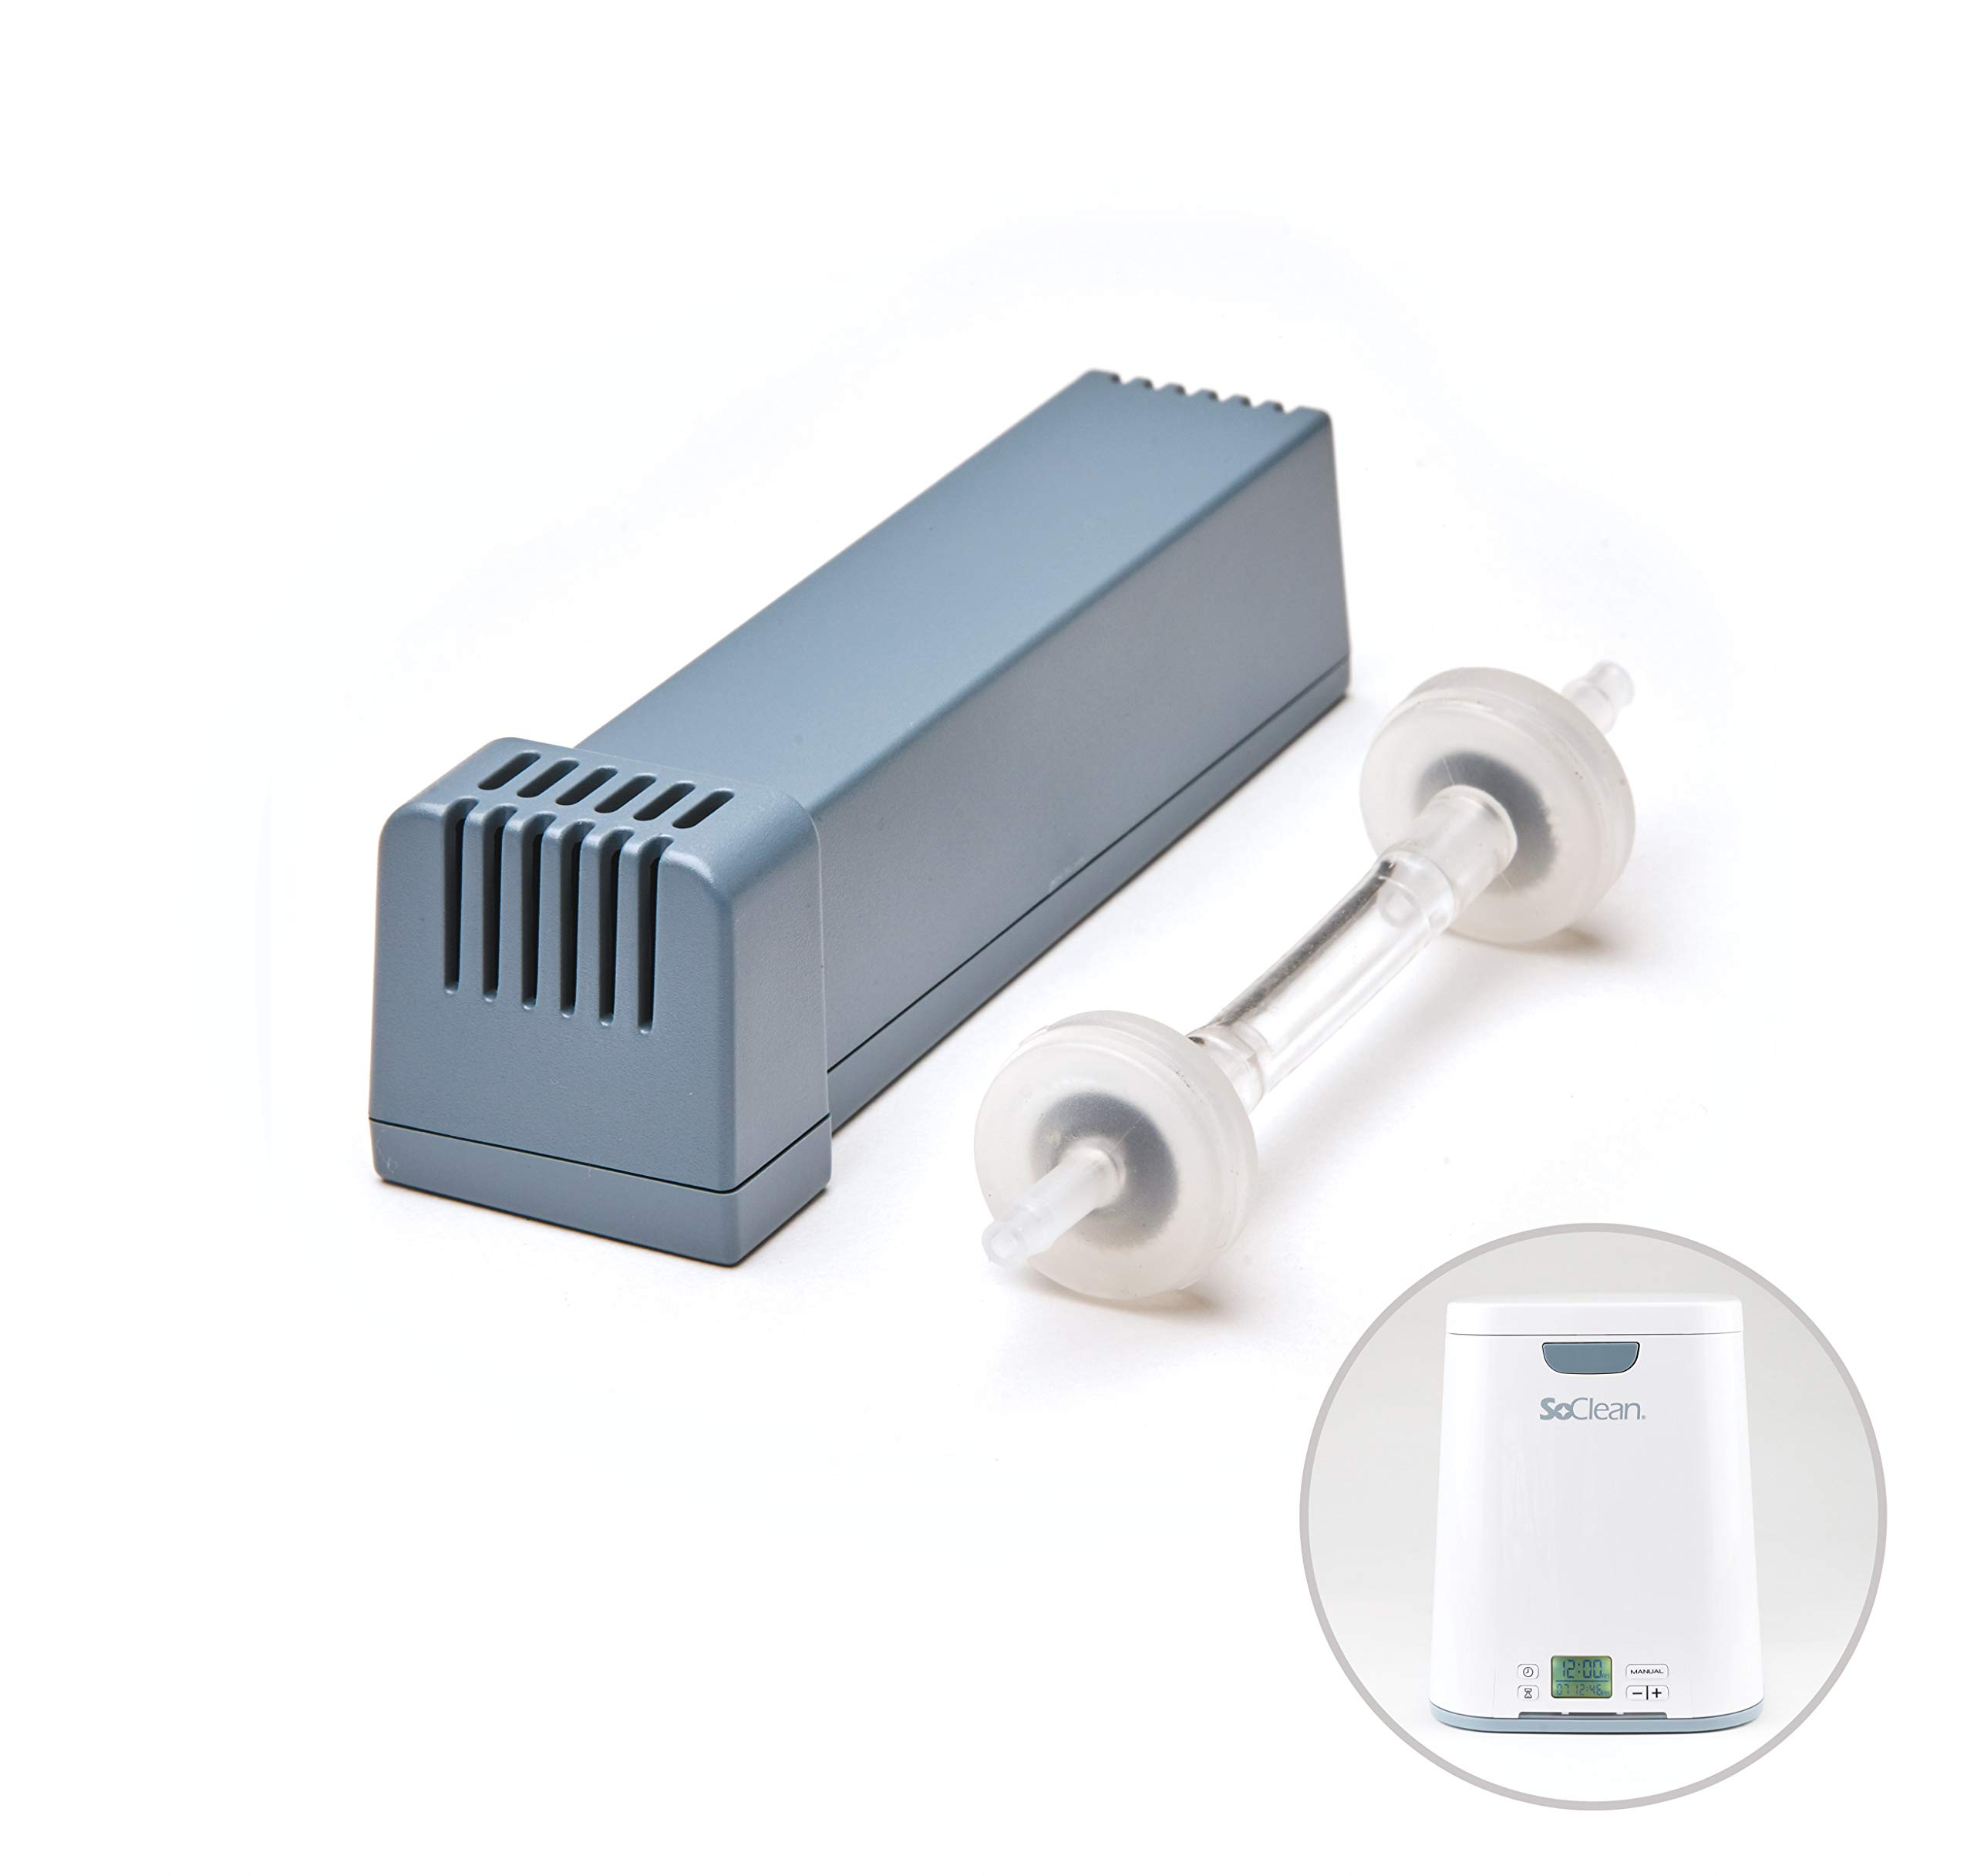 SoClean 2: Cartridge Filter Kit - Authentic Manufacturer Produced and Tested - Protects SoClean 2 Product Warranty